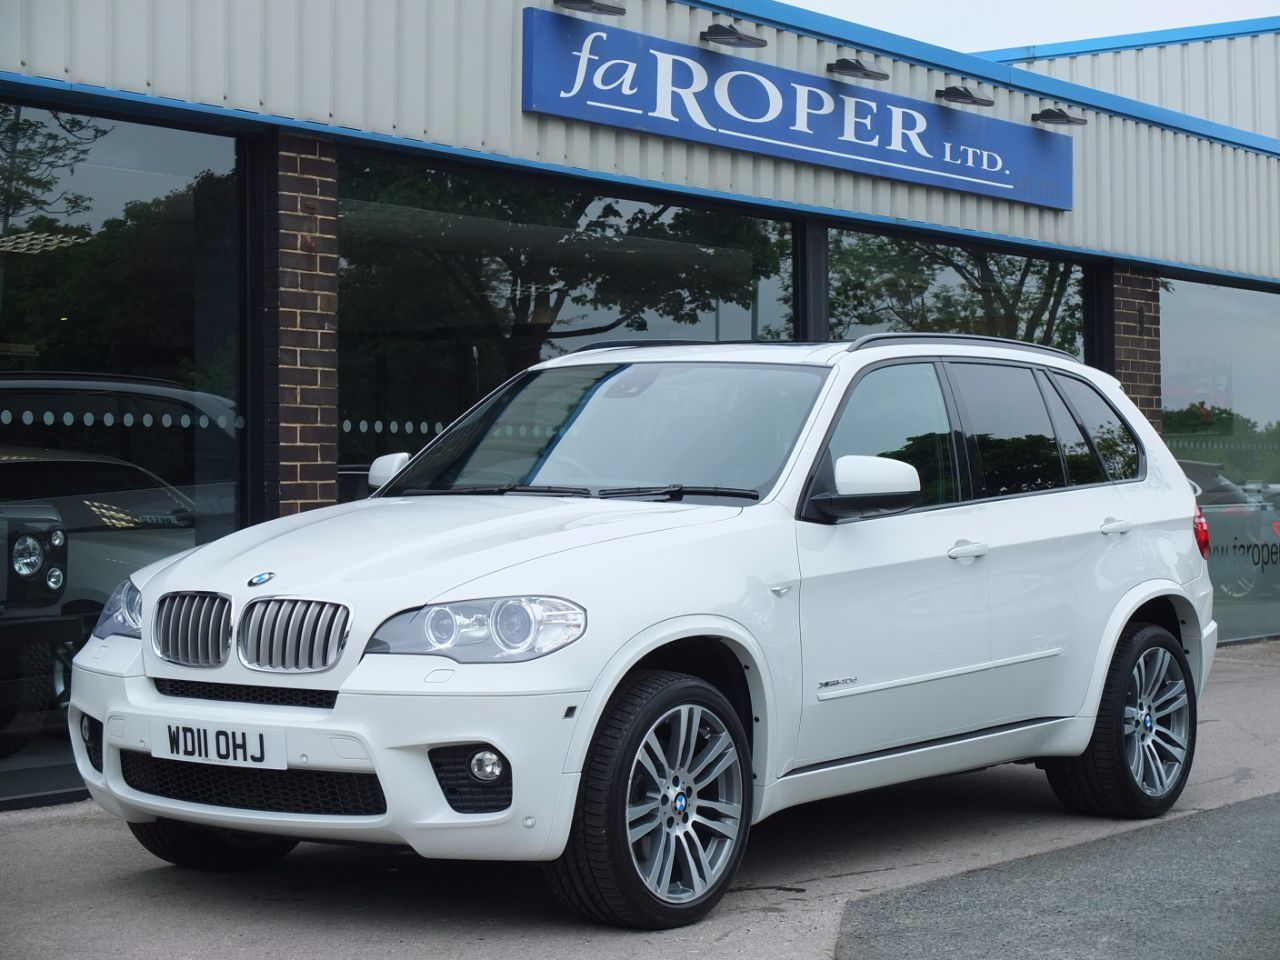 BMW X5 3.0 xDrive40d M Sport Auto (Pan Roof ++++Spec) Estate Diesel Alpine WhiteBMW X5 3.0 xDrive40d M Sport Auto (Pan Roof ++++Spec) Estate Diesel Alpine White at fa Roper Ltd Bradford